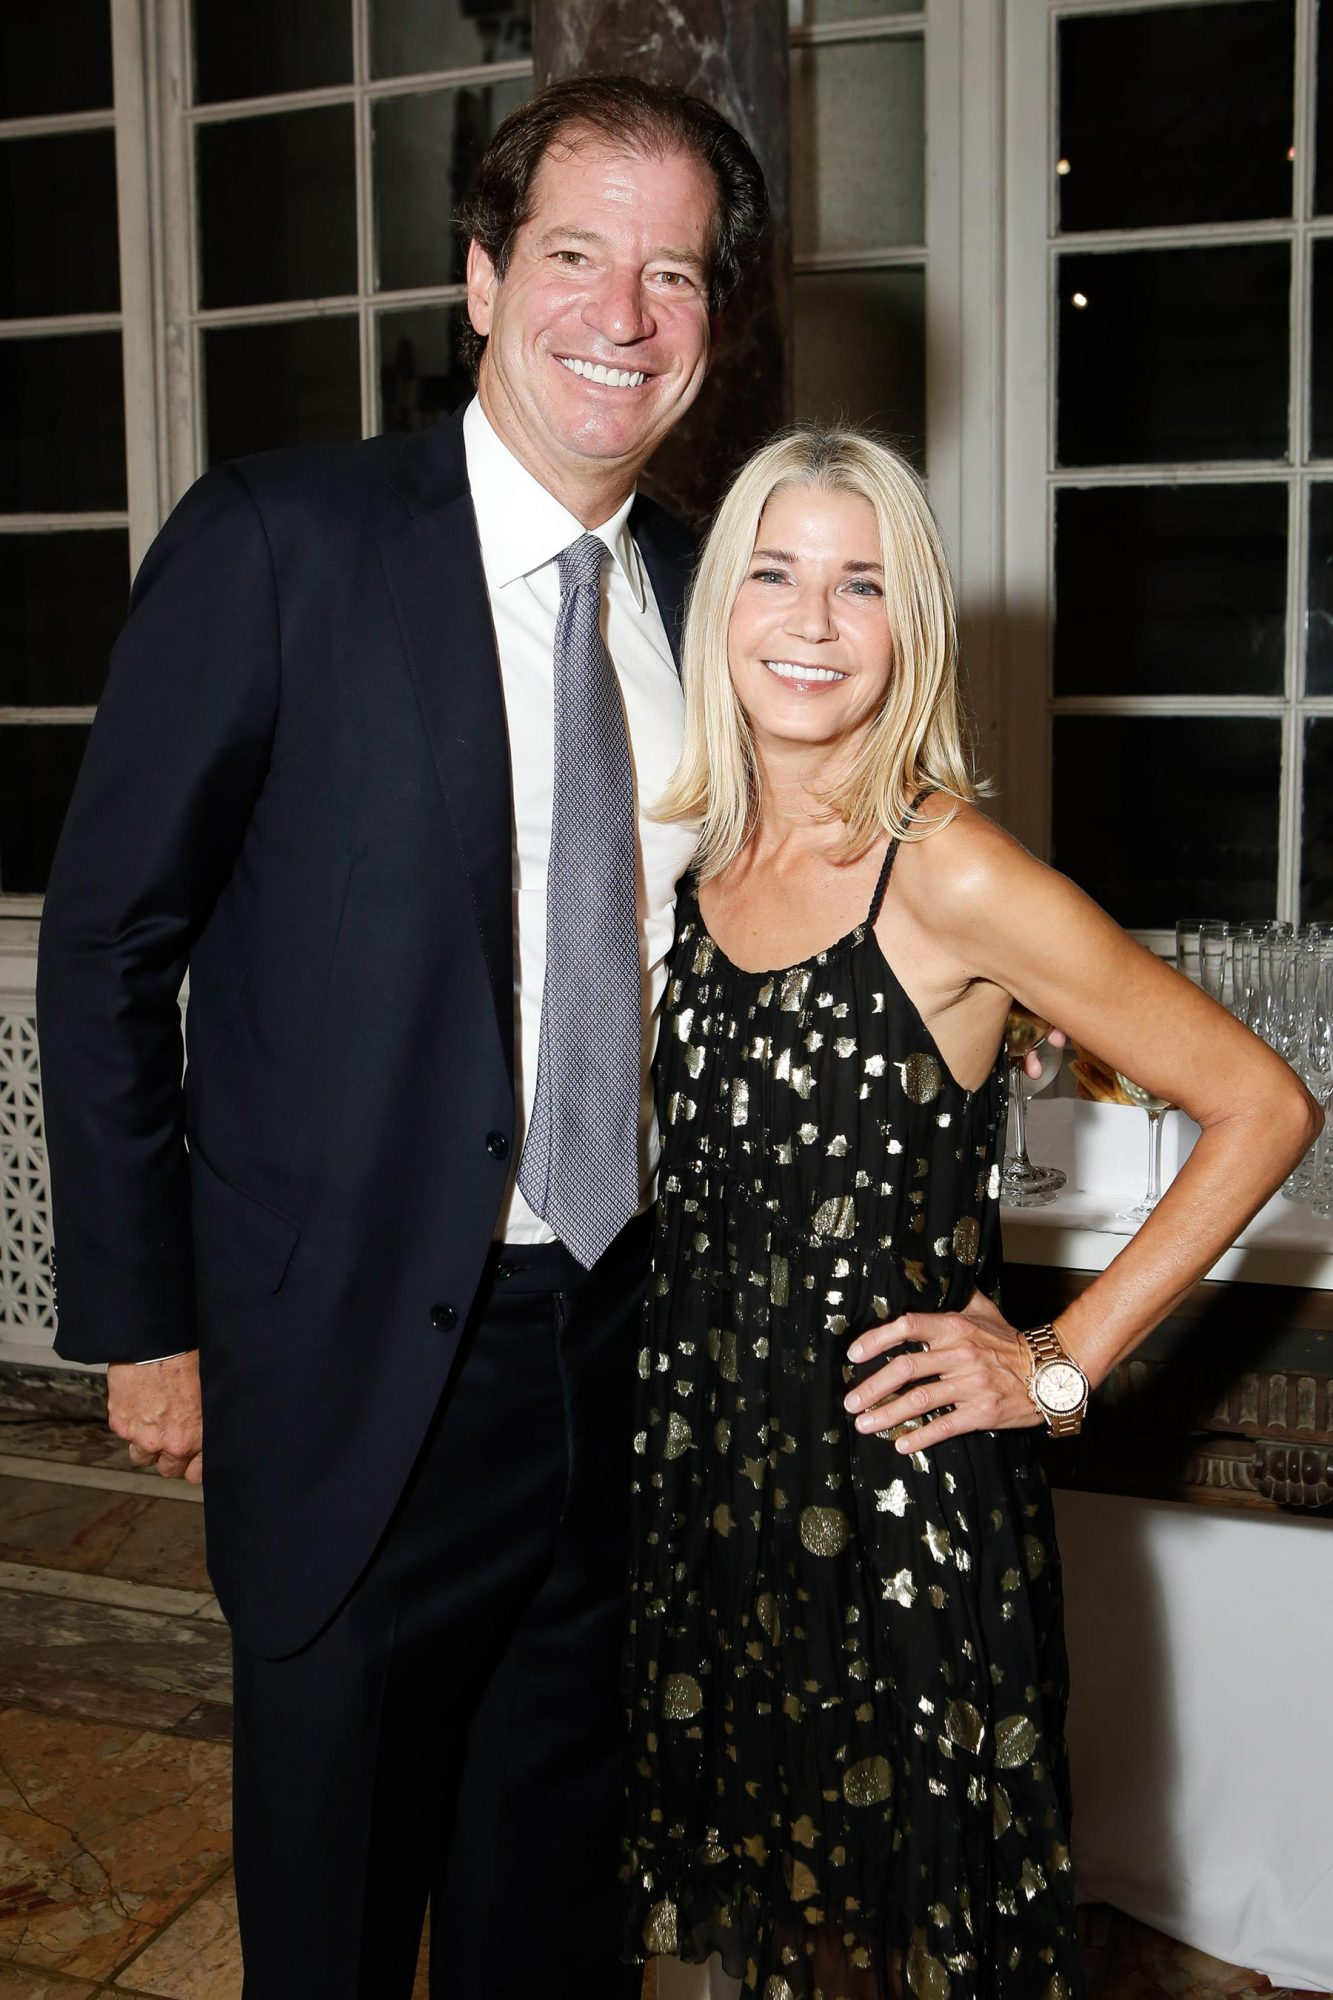 Jim Coleman and Candace Bushnell